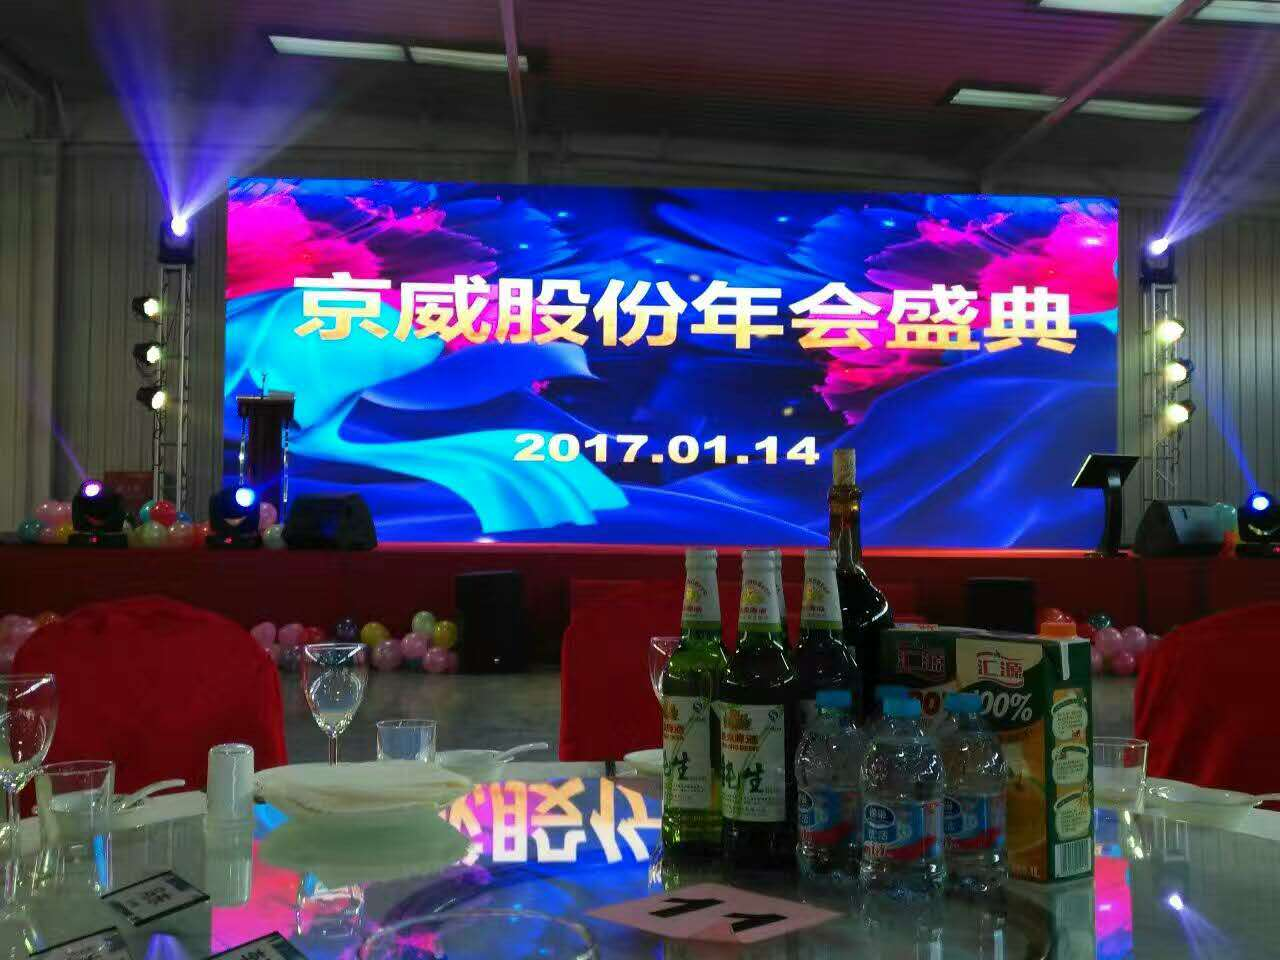 The annual meeting of BWKW was held successfully.